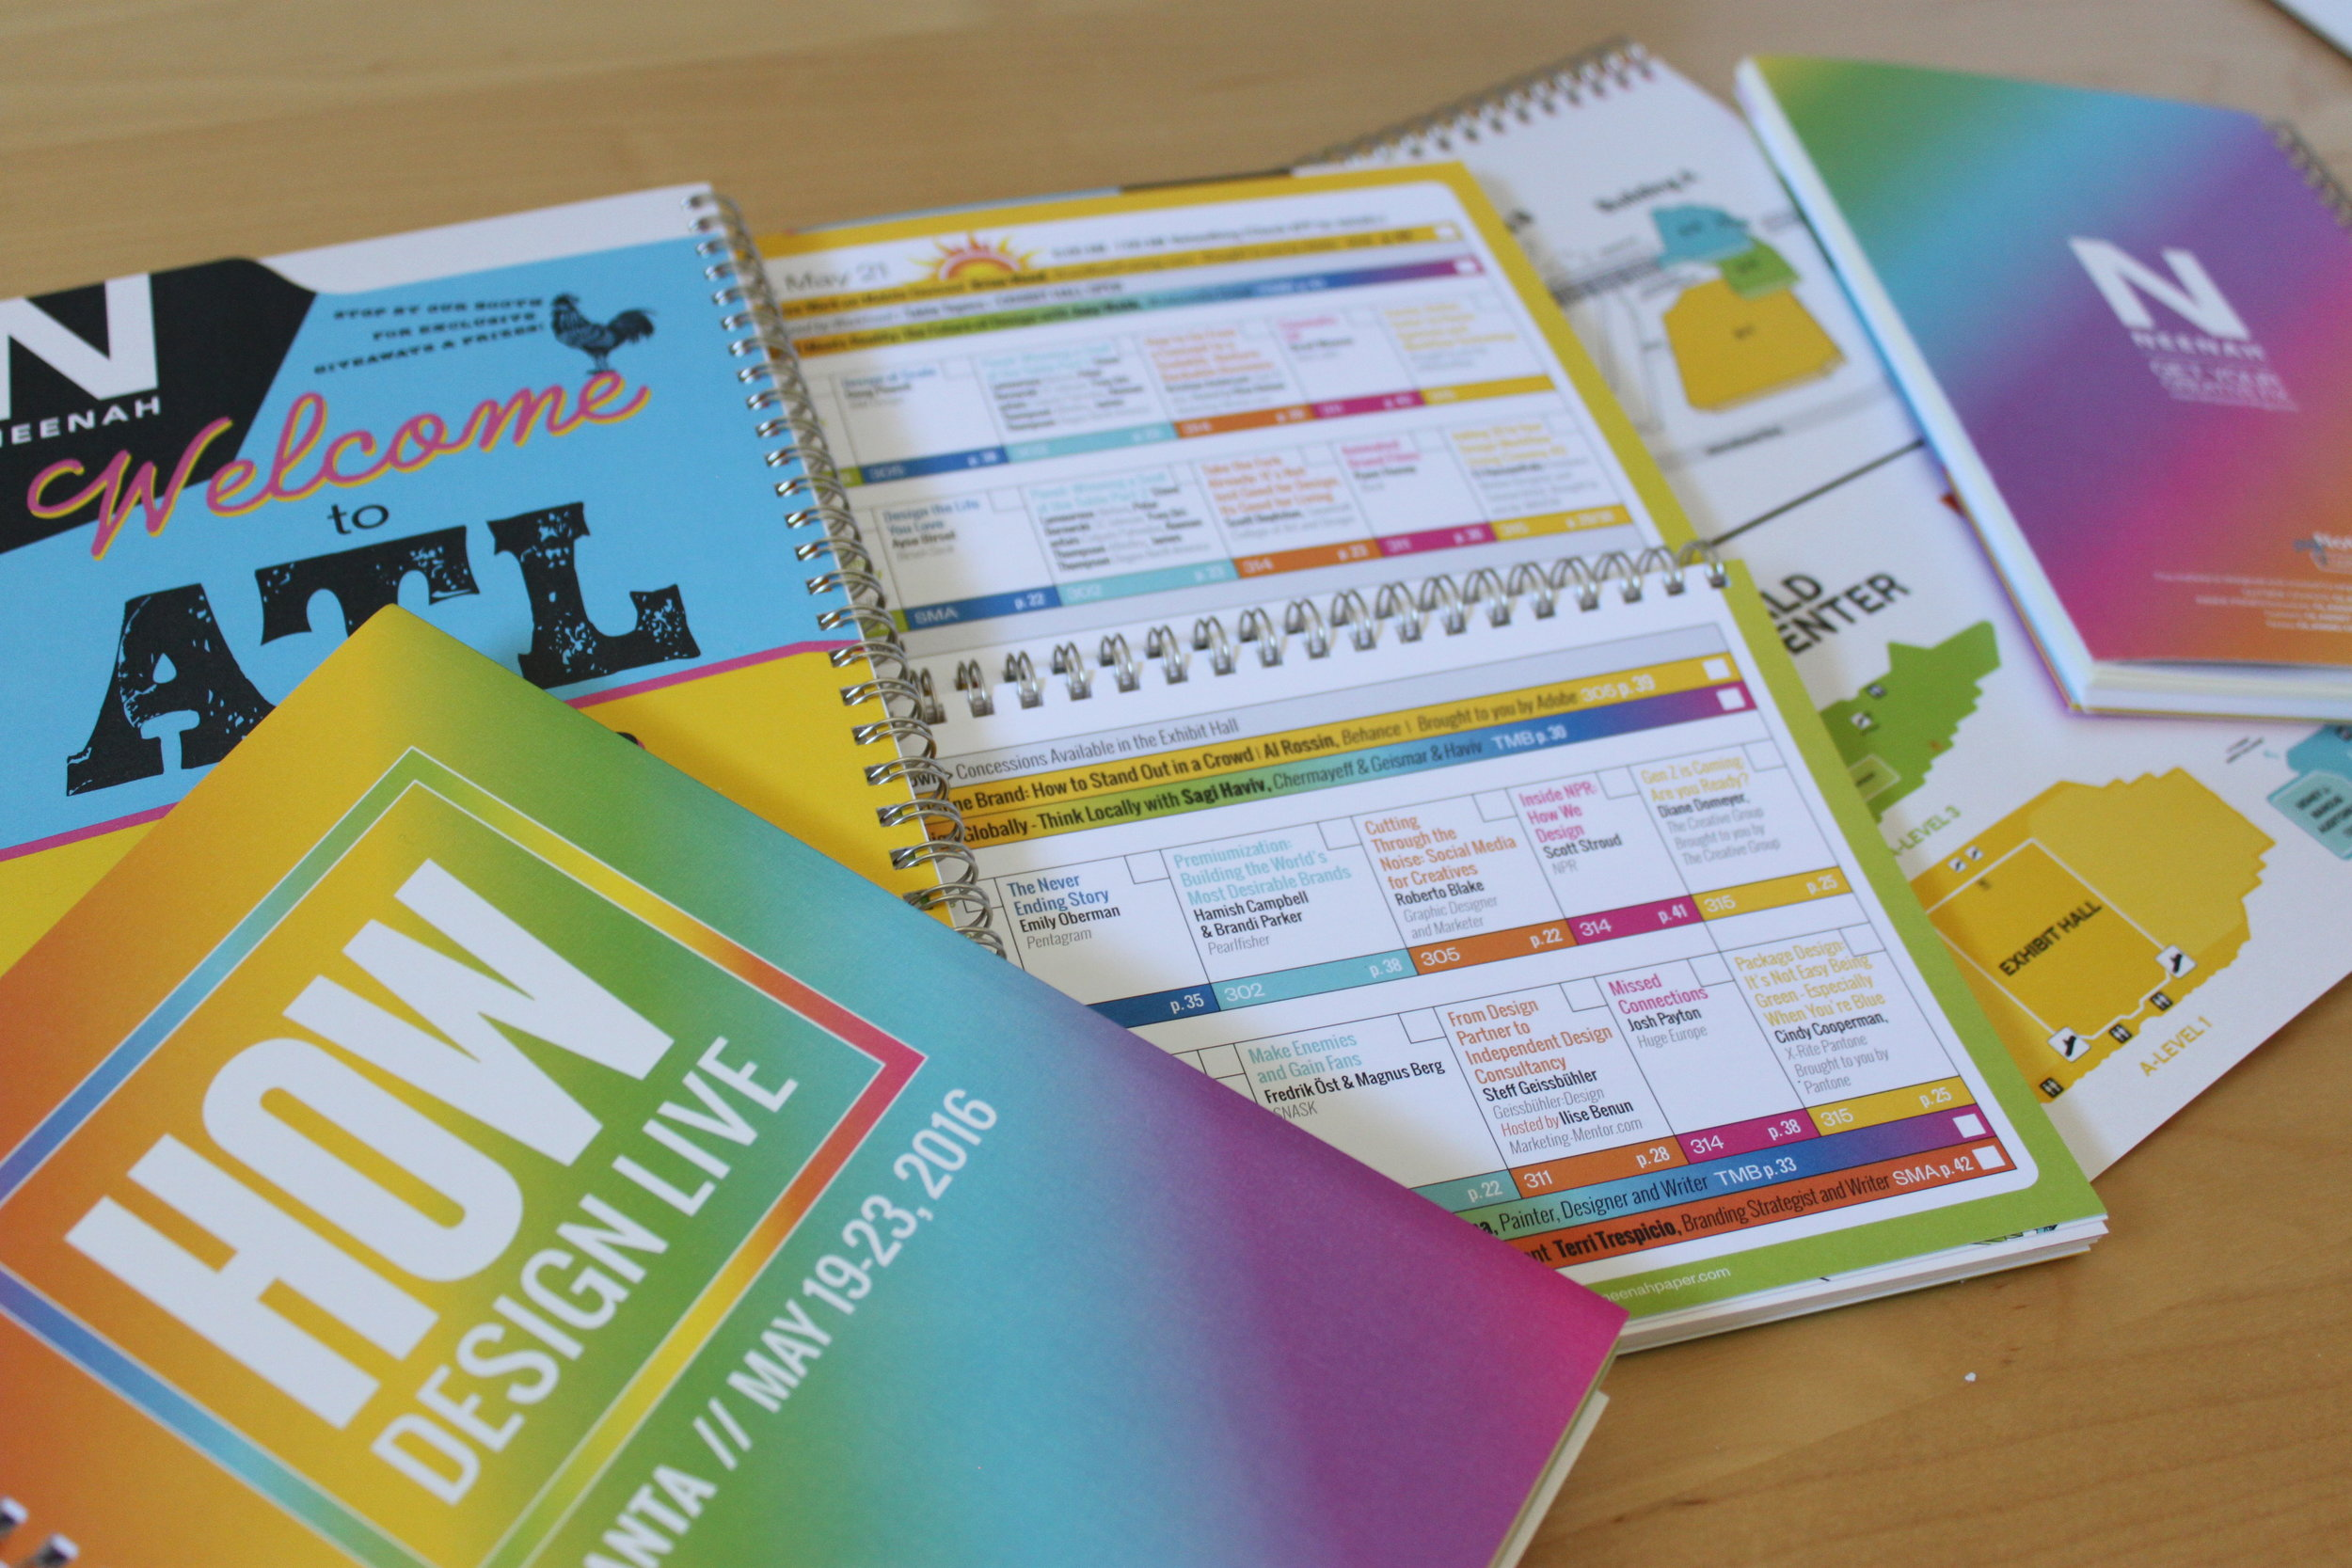 HOWLive 2016 Event Directory, Emerald Expositions